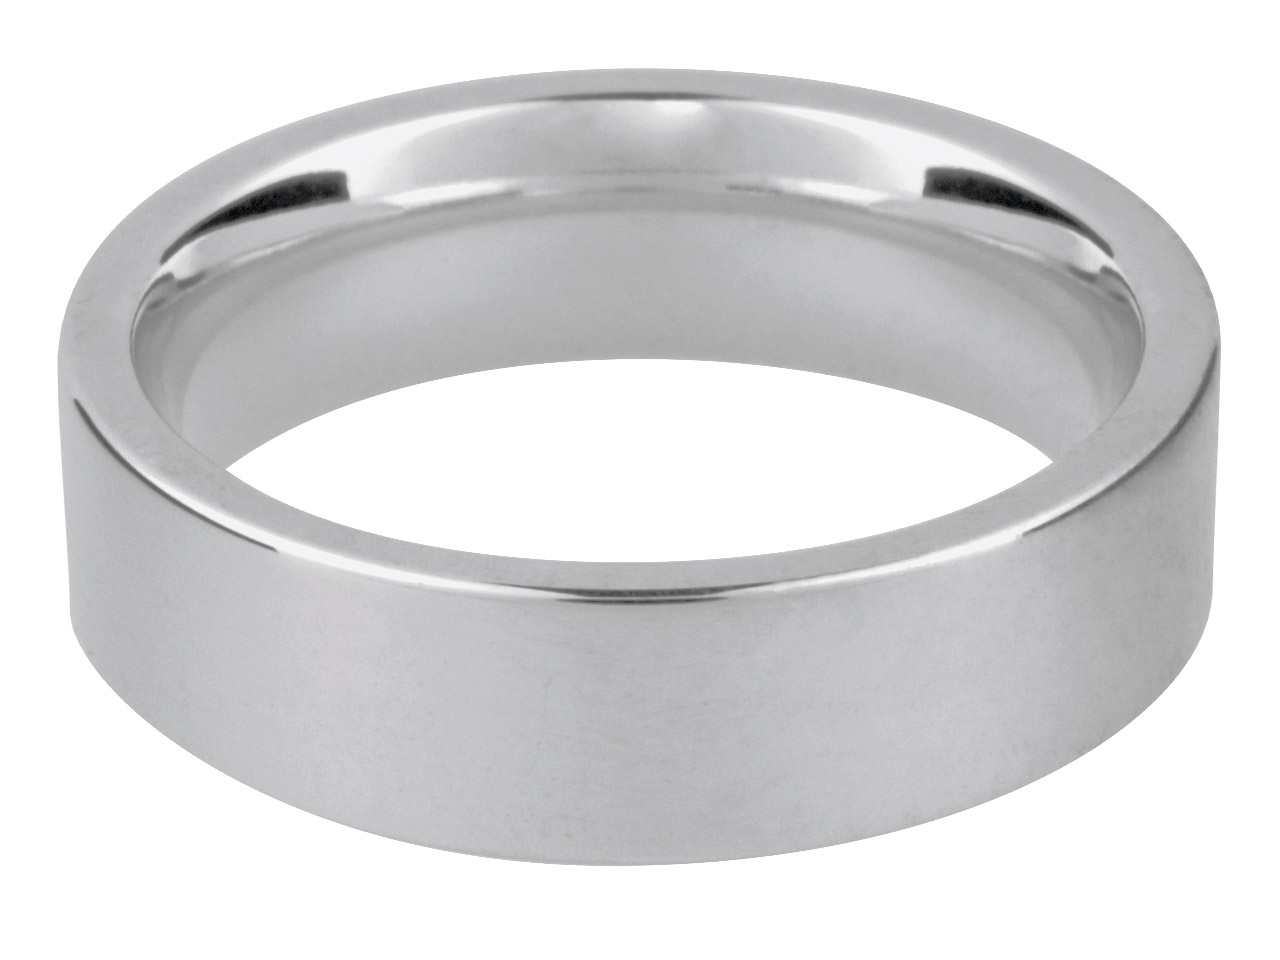 Palladium 500 Easy Fit Wedding Ring 6.0mm, Size V, 7.7g Medium Weight,  Hallmarked, Wall Thickness 1.84mm